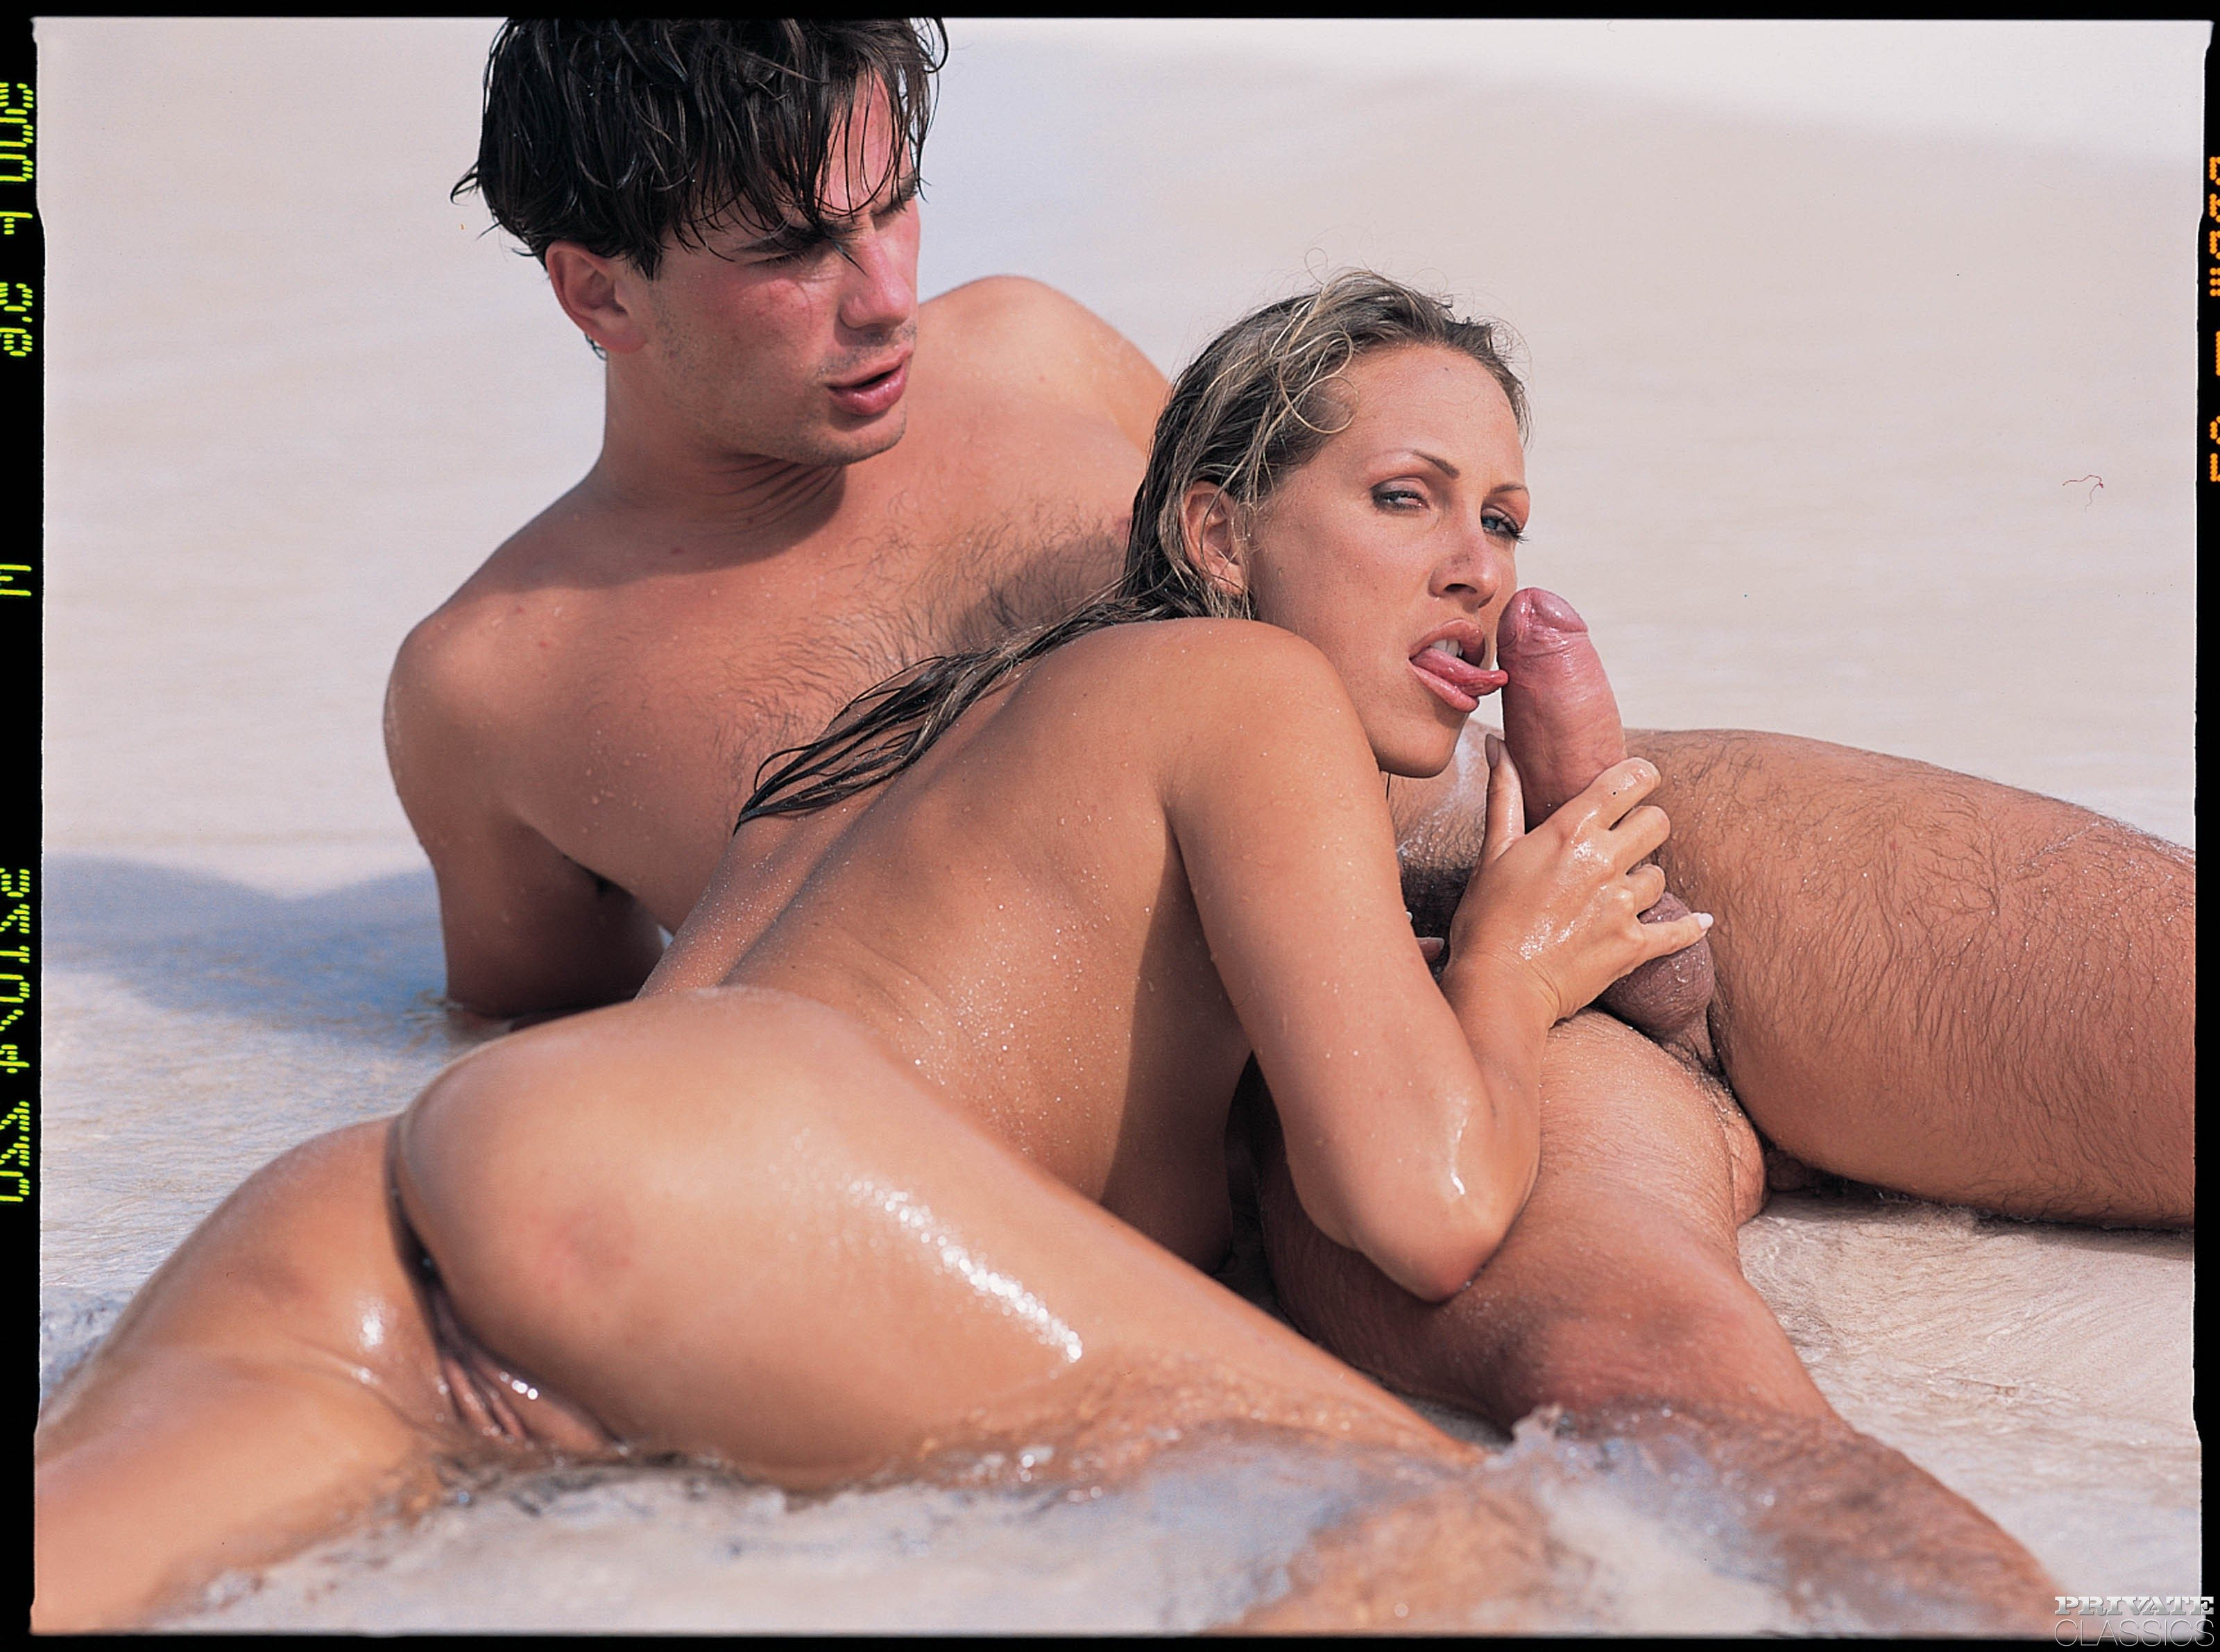 hot amateur porn with awesome sex on the beach